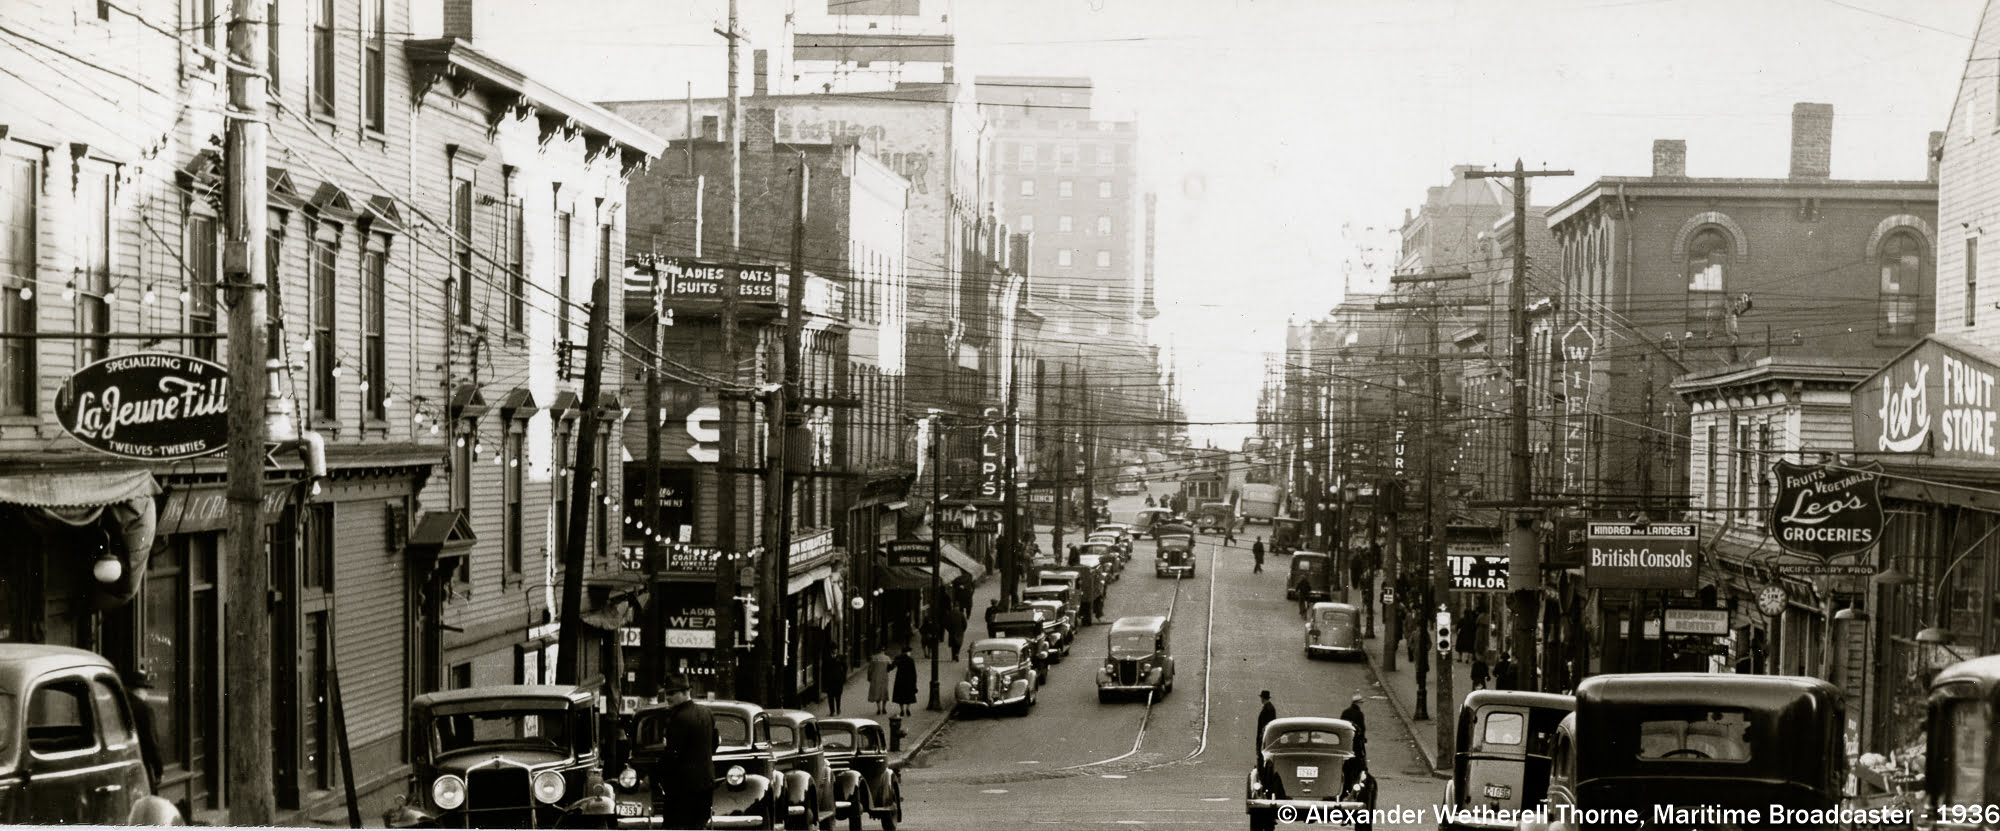 Looking along Charlotte Street from Sydney, 1936.